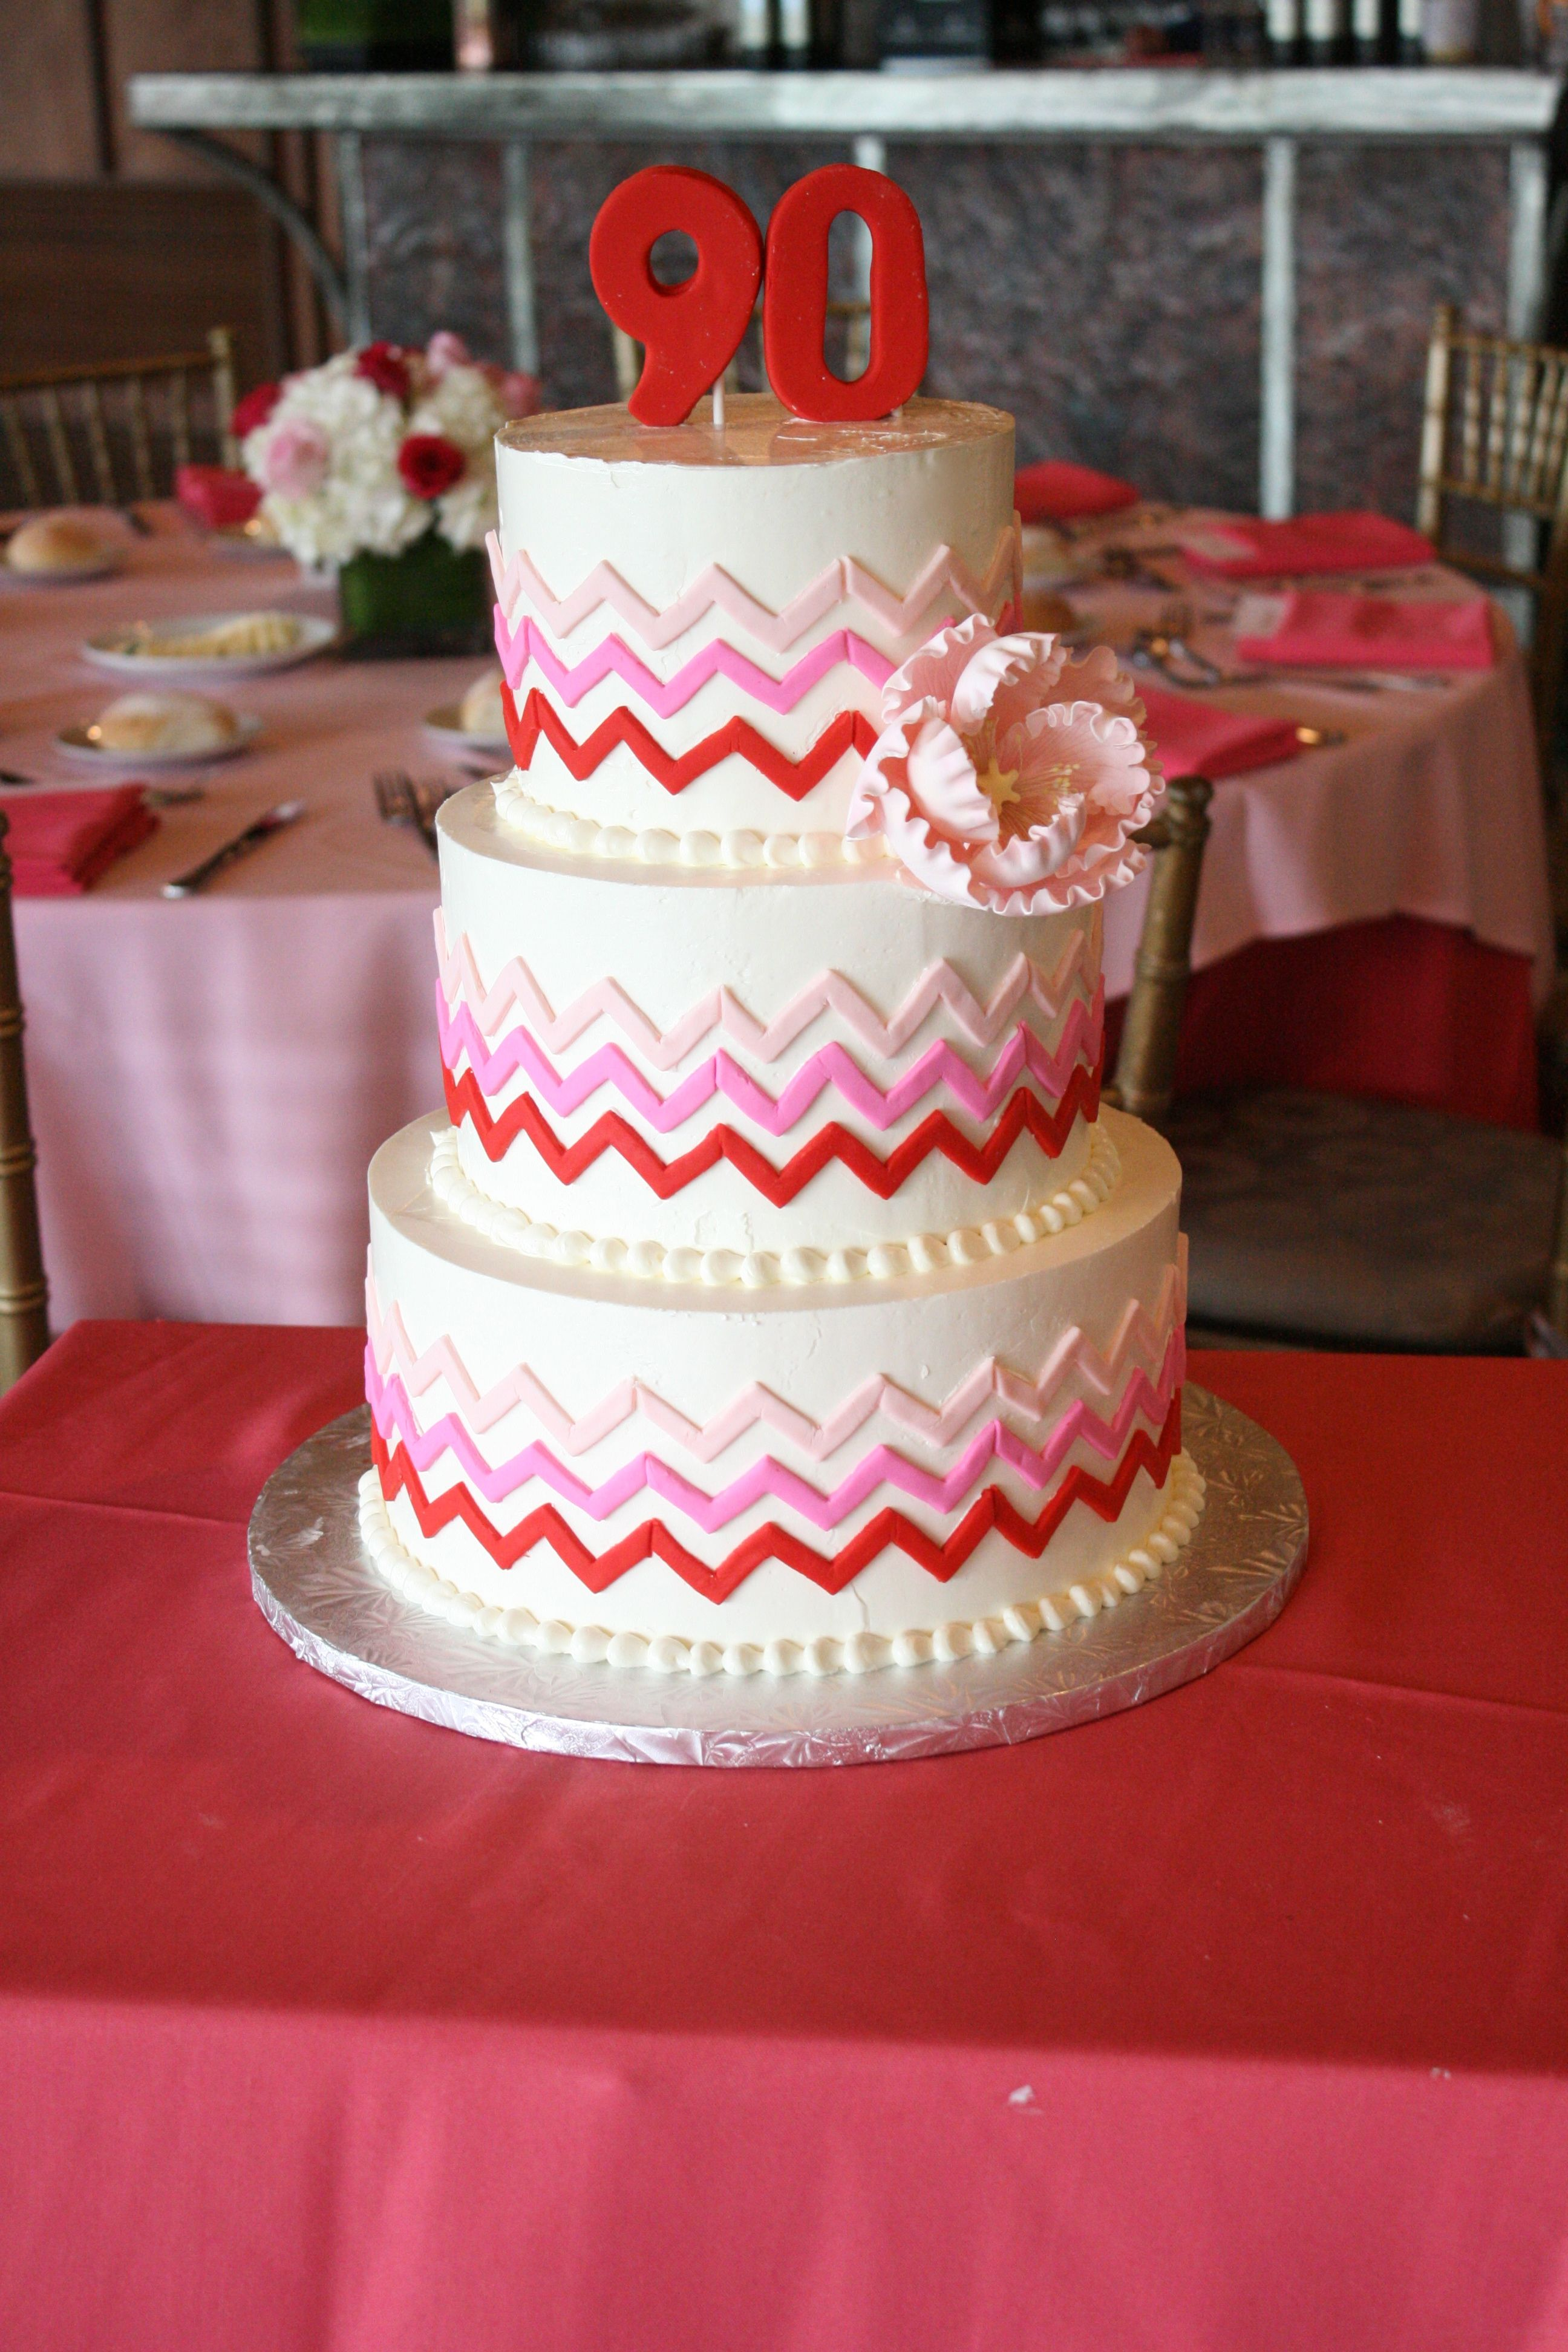 Pink And Red Chevron Birthday Cake GoodieBox Bakeshop Event In Jersey City NJ